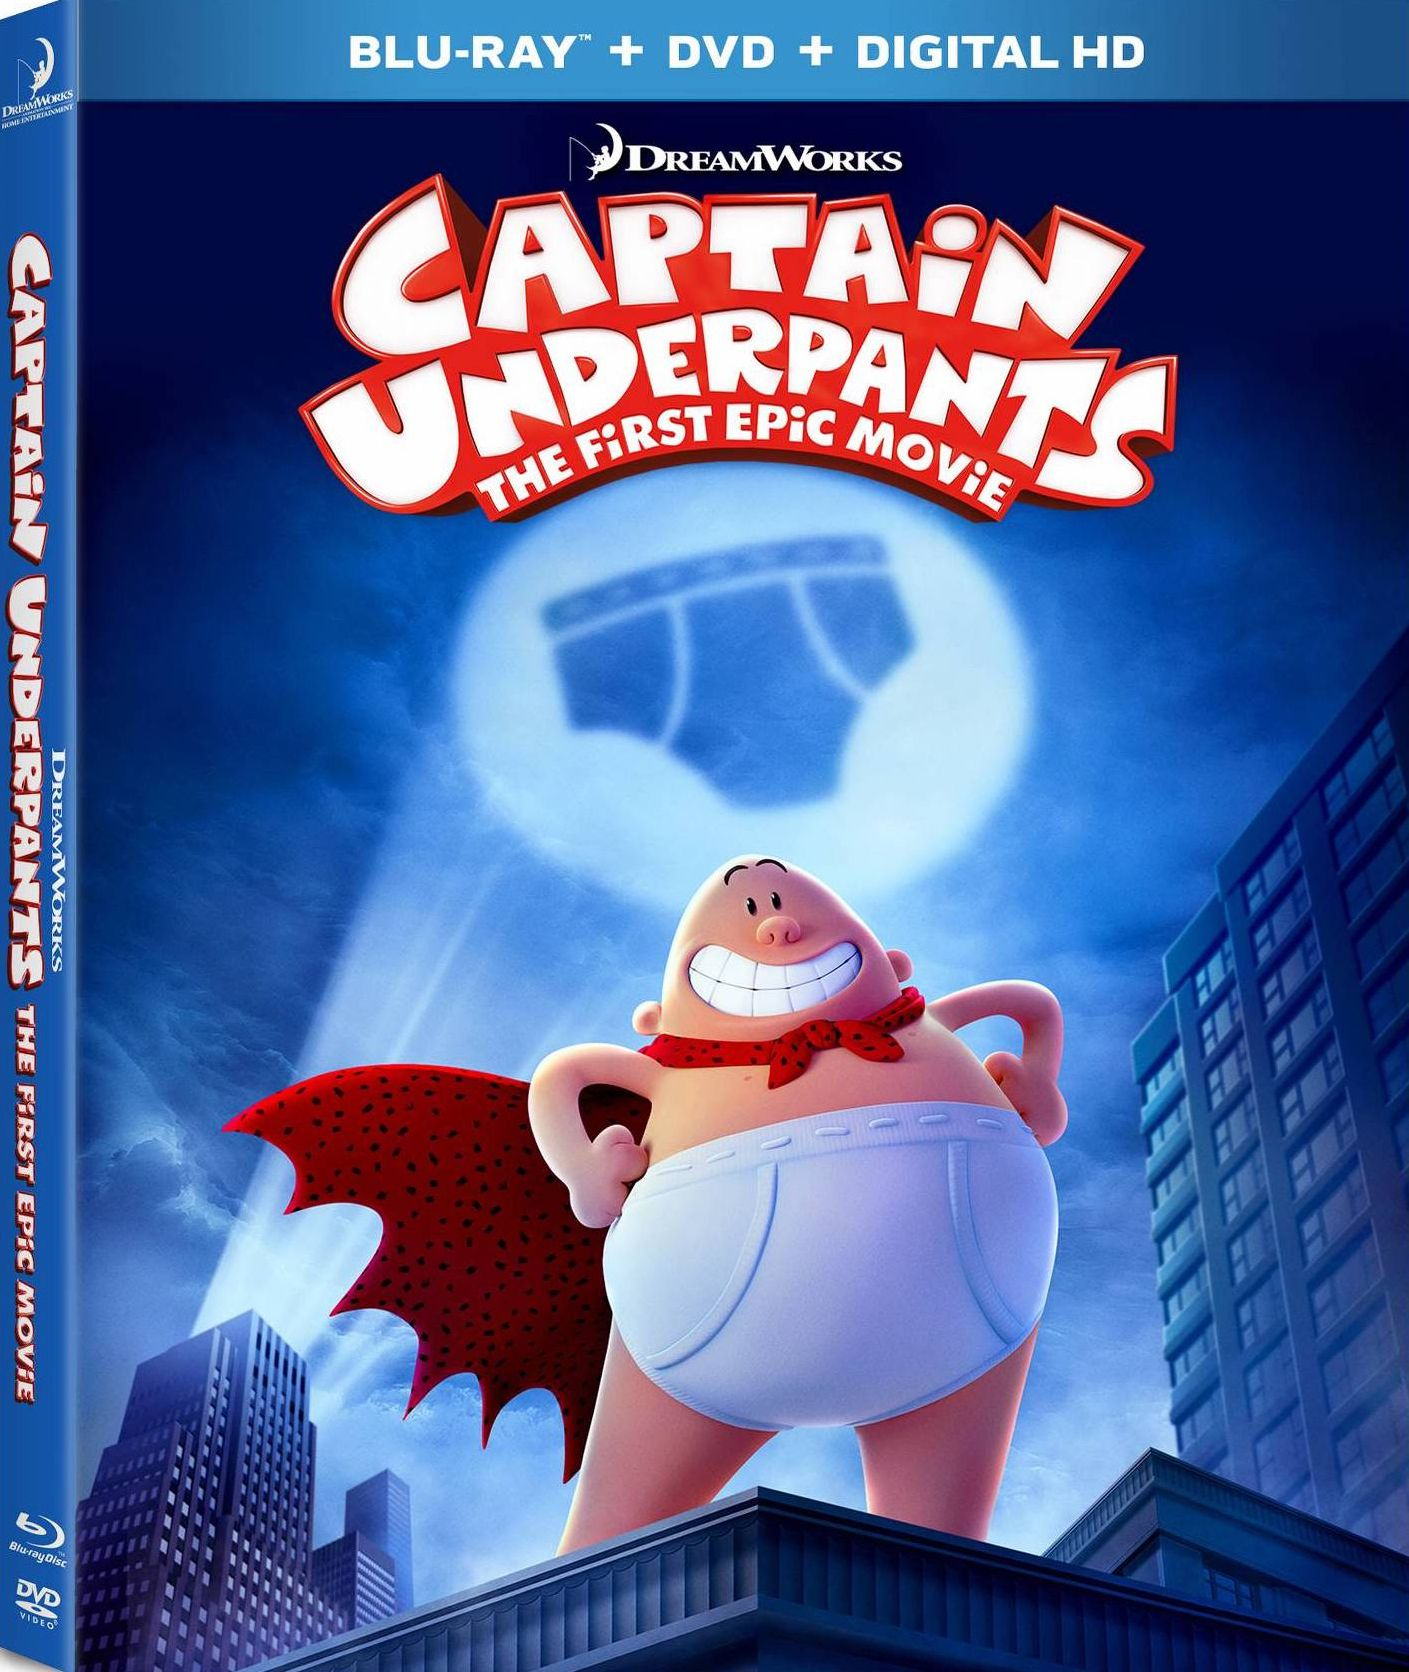 Captain underpants the first epic movie bluray